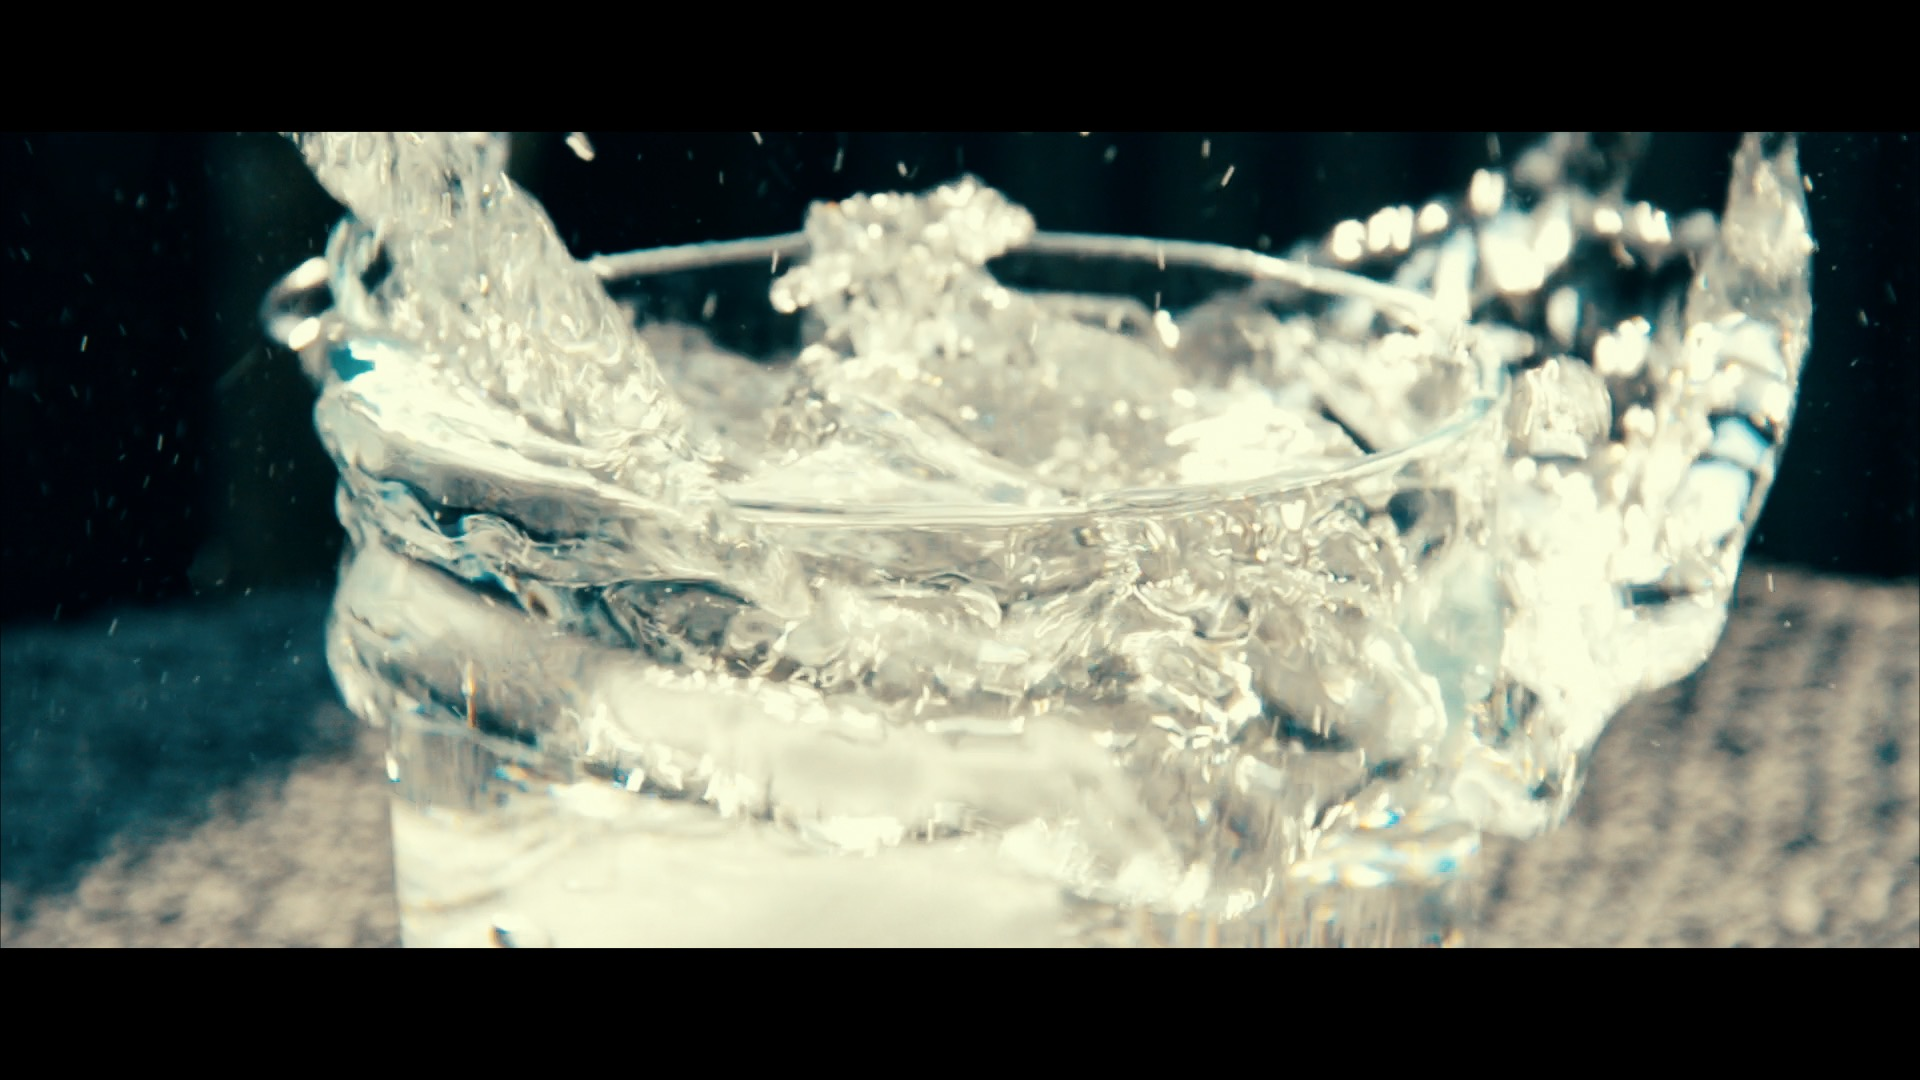 Water Slow Motion 10% Speed